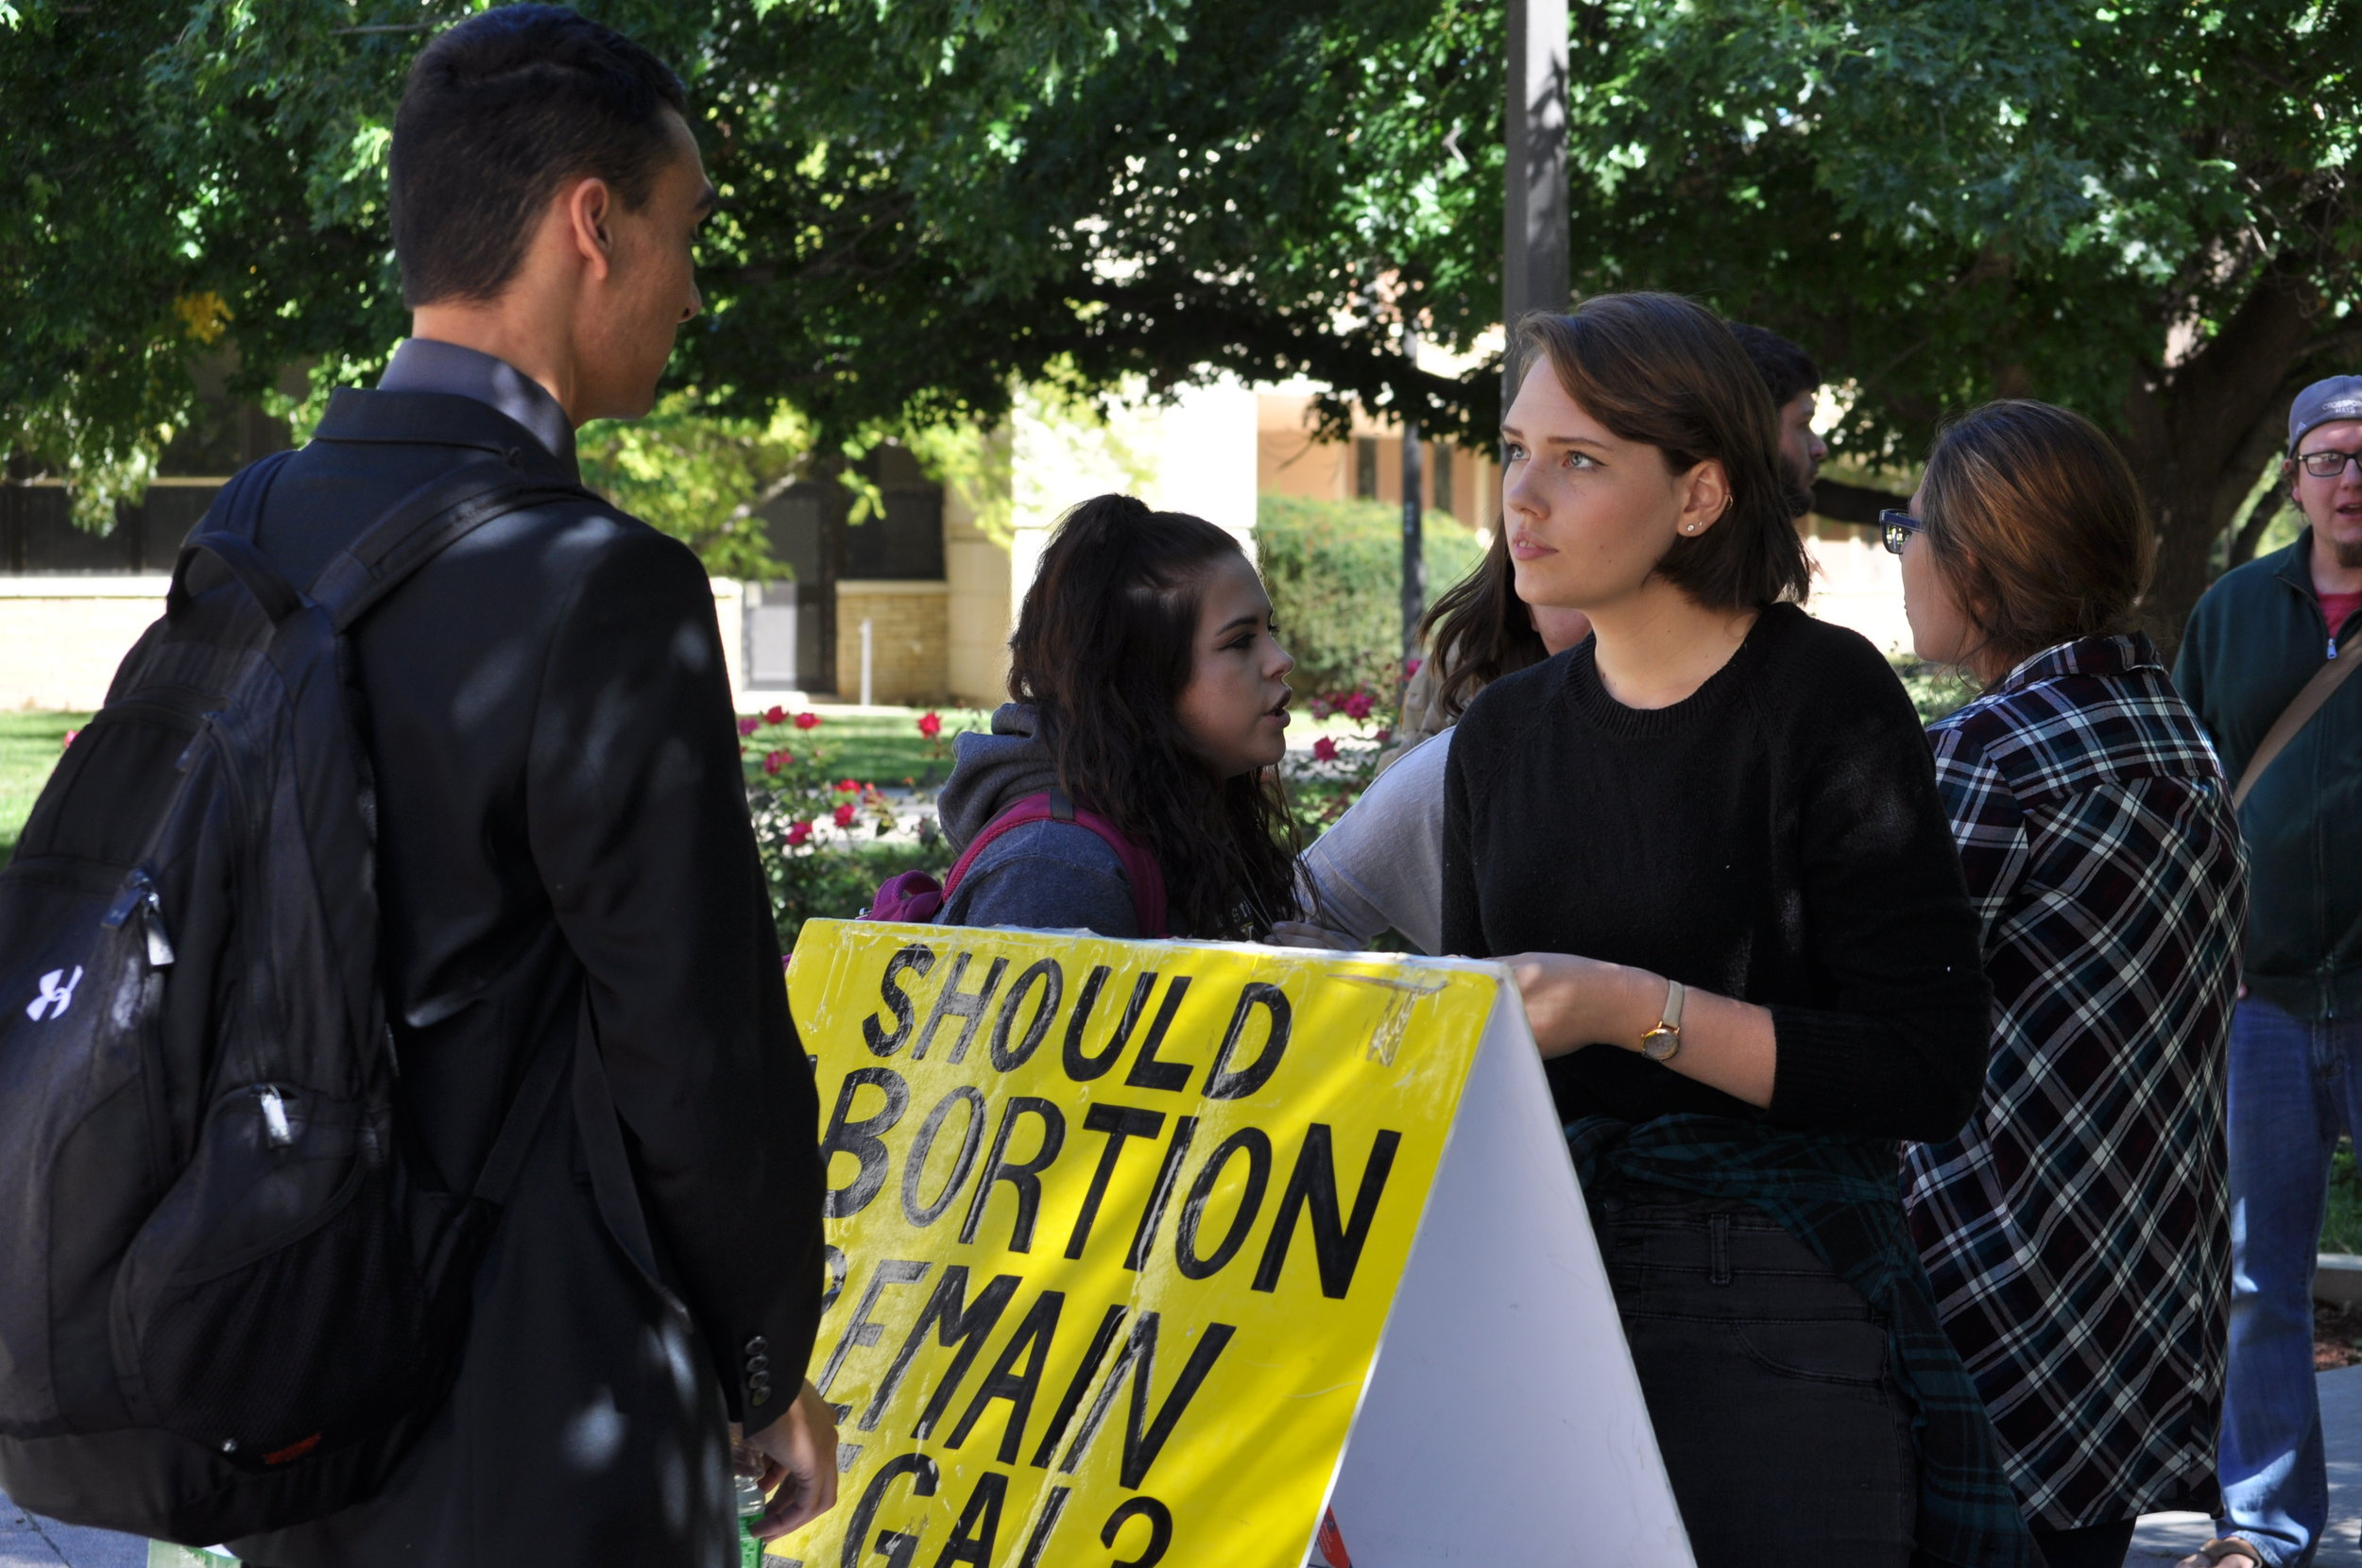 Grace Fontenot interacts with a student at Fort Hays State University in Hays, Kansas, in September 2016. Grace is raising support to work full-time with Justice For All.  You can support her work with JFA by making a donation here (look for Grace's designation or put her name in the notes).